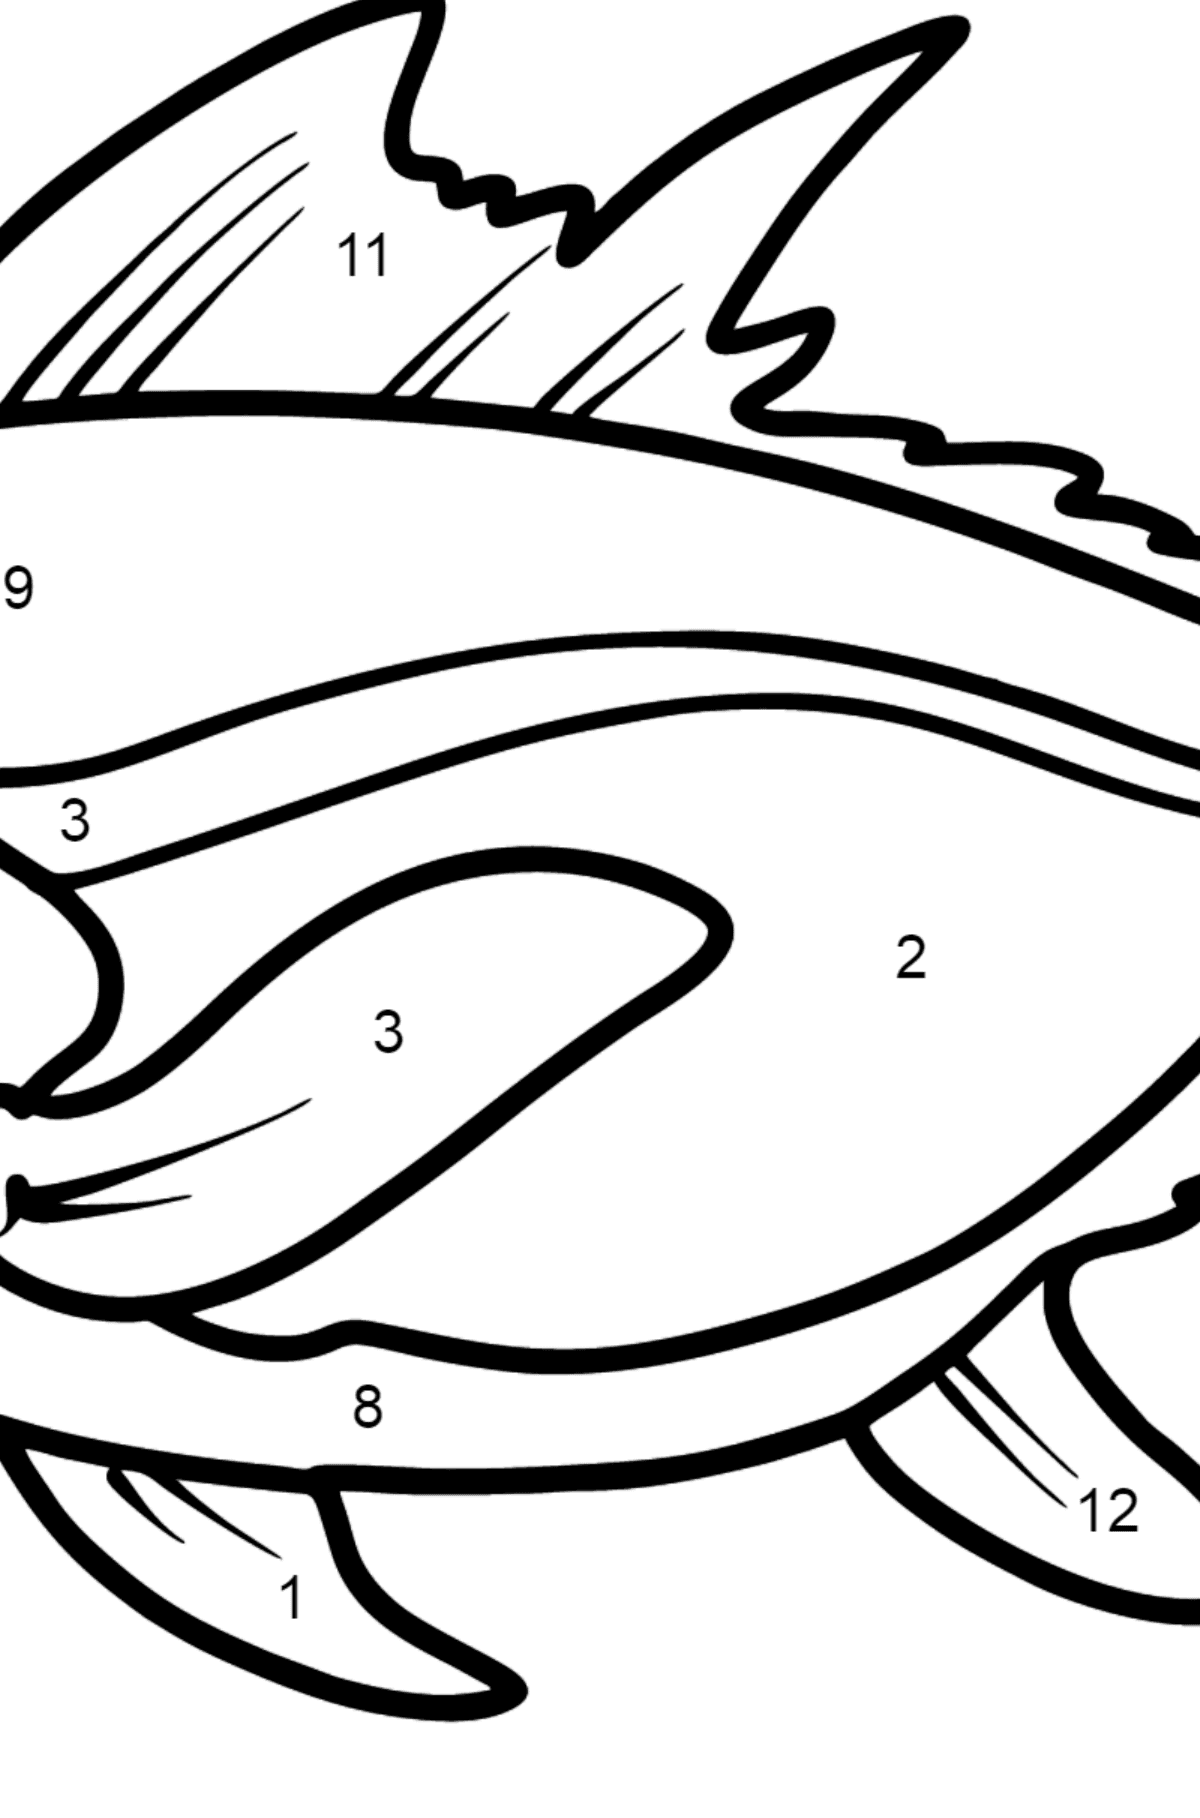 Tuna coloring page - Coloring by Numbers for Kids